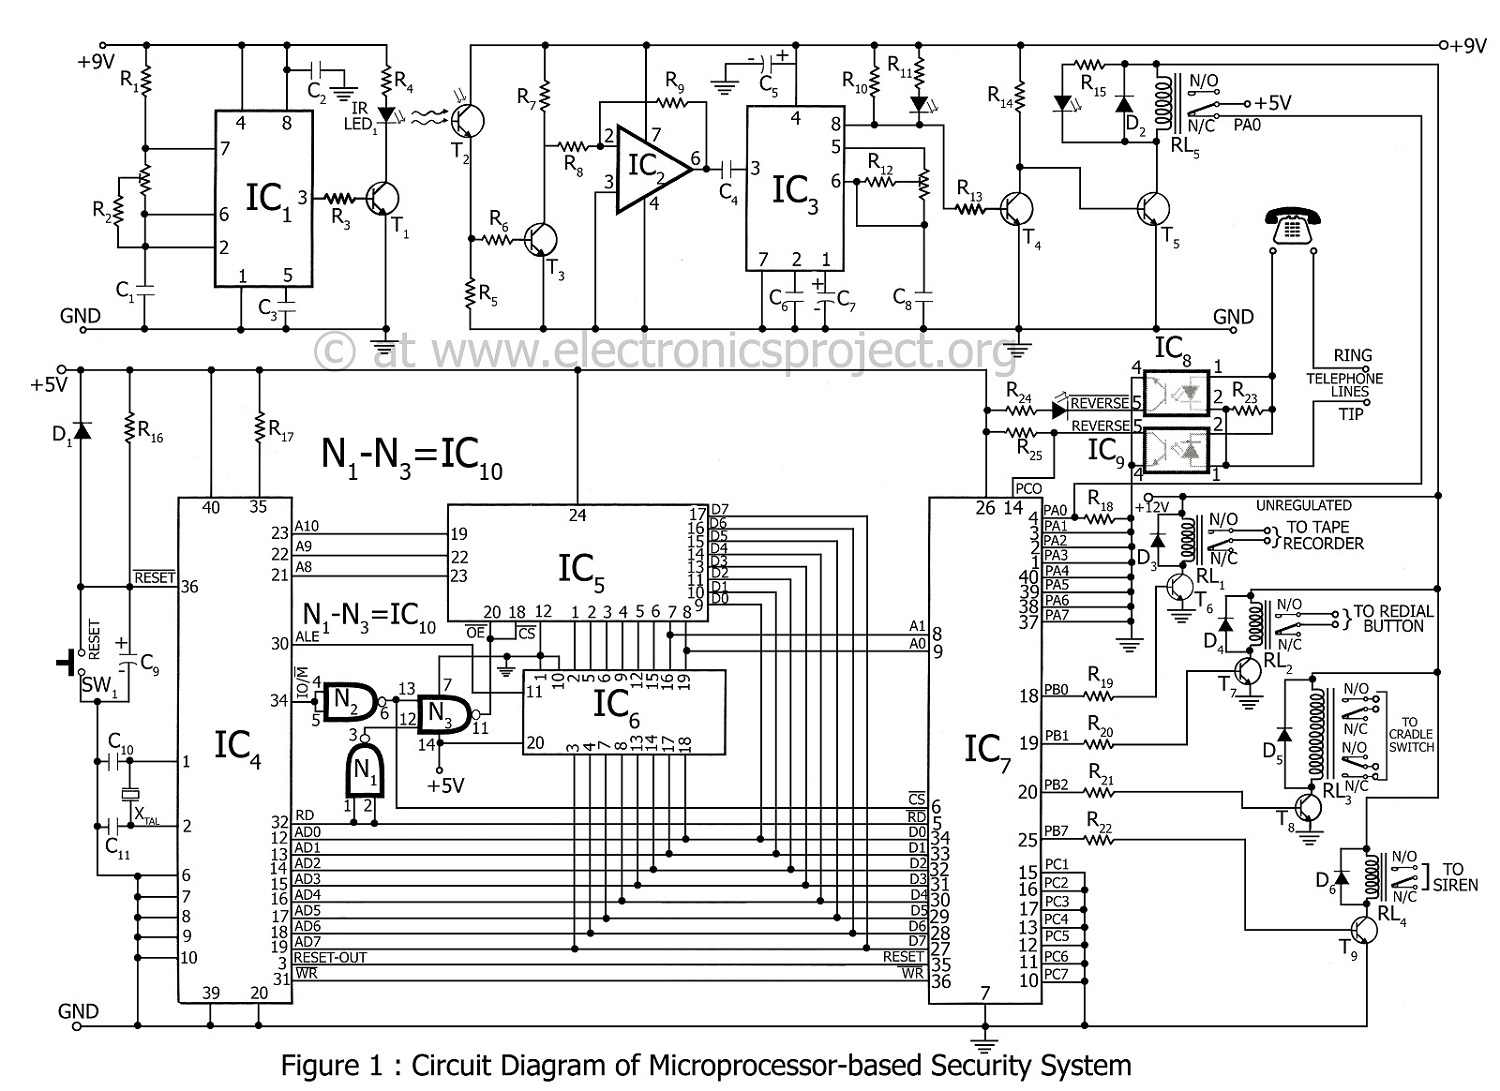 block diagram of microprocessor the wiring diagram block diagram of microprocessor vidim wiring diagram block diagram